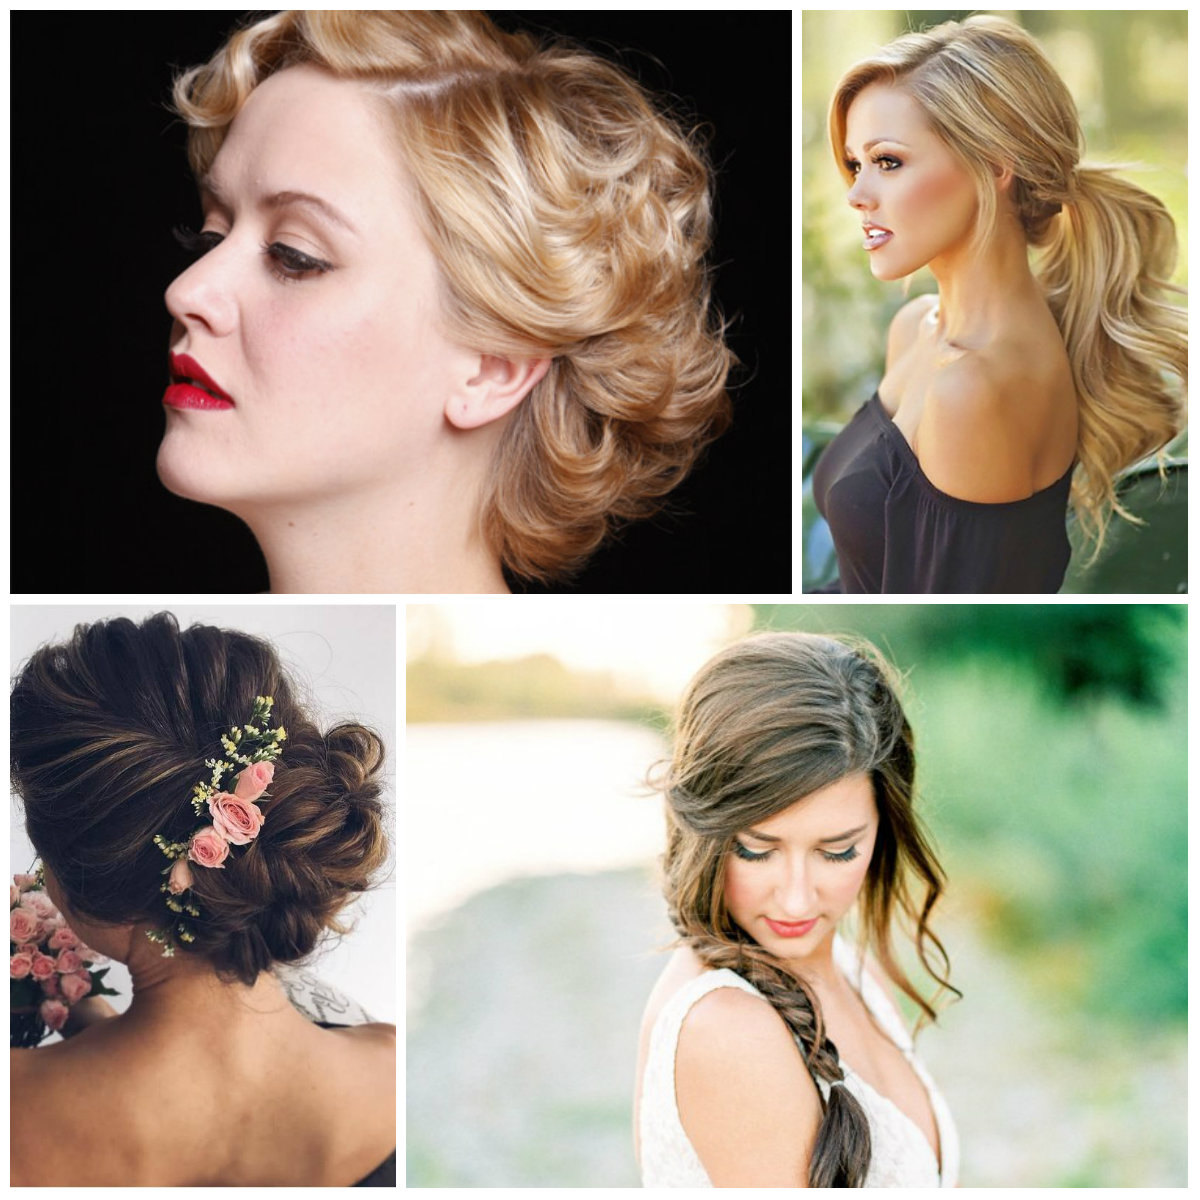 Formal Hairstyle Ideas for Summer 2017 Parties